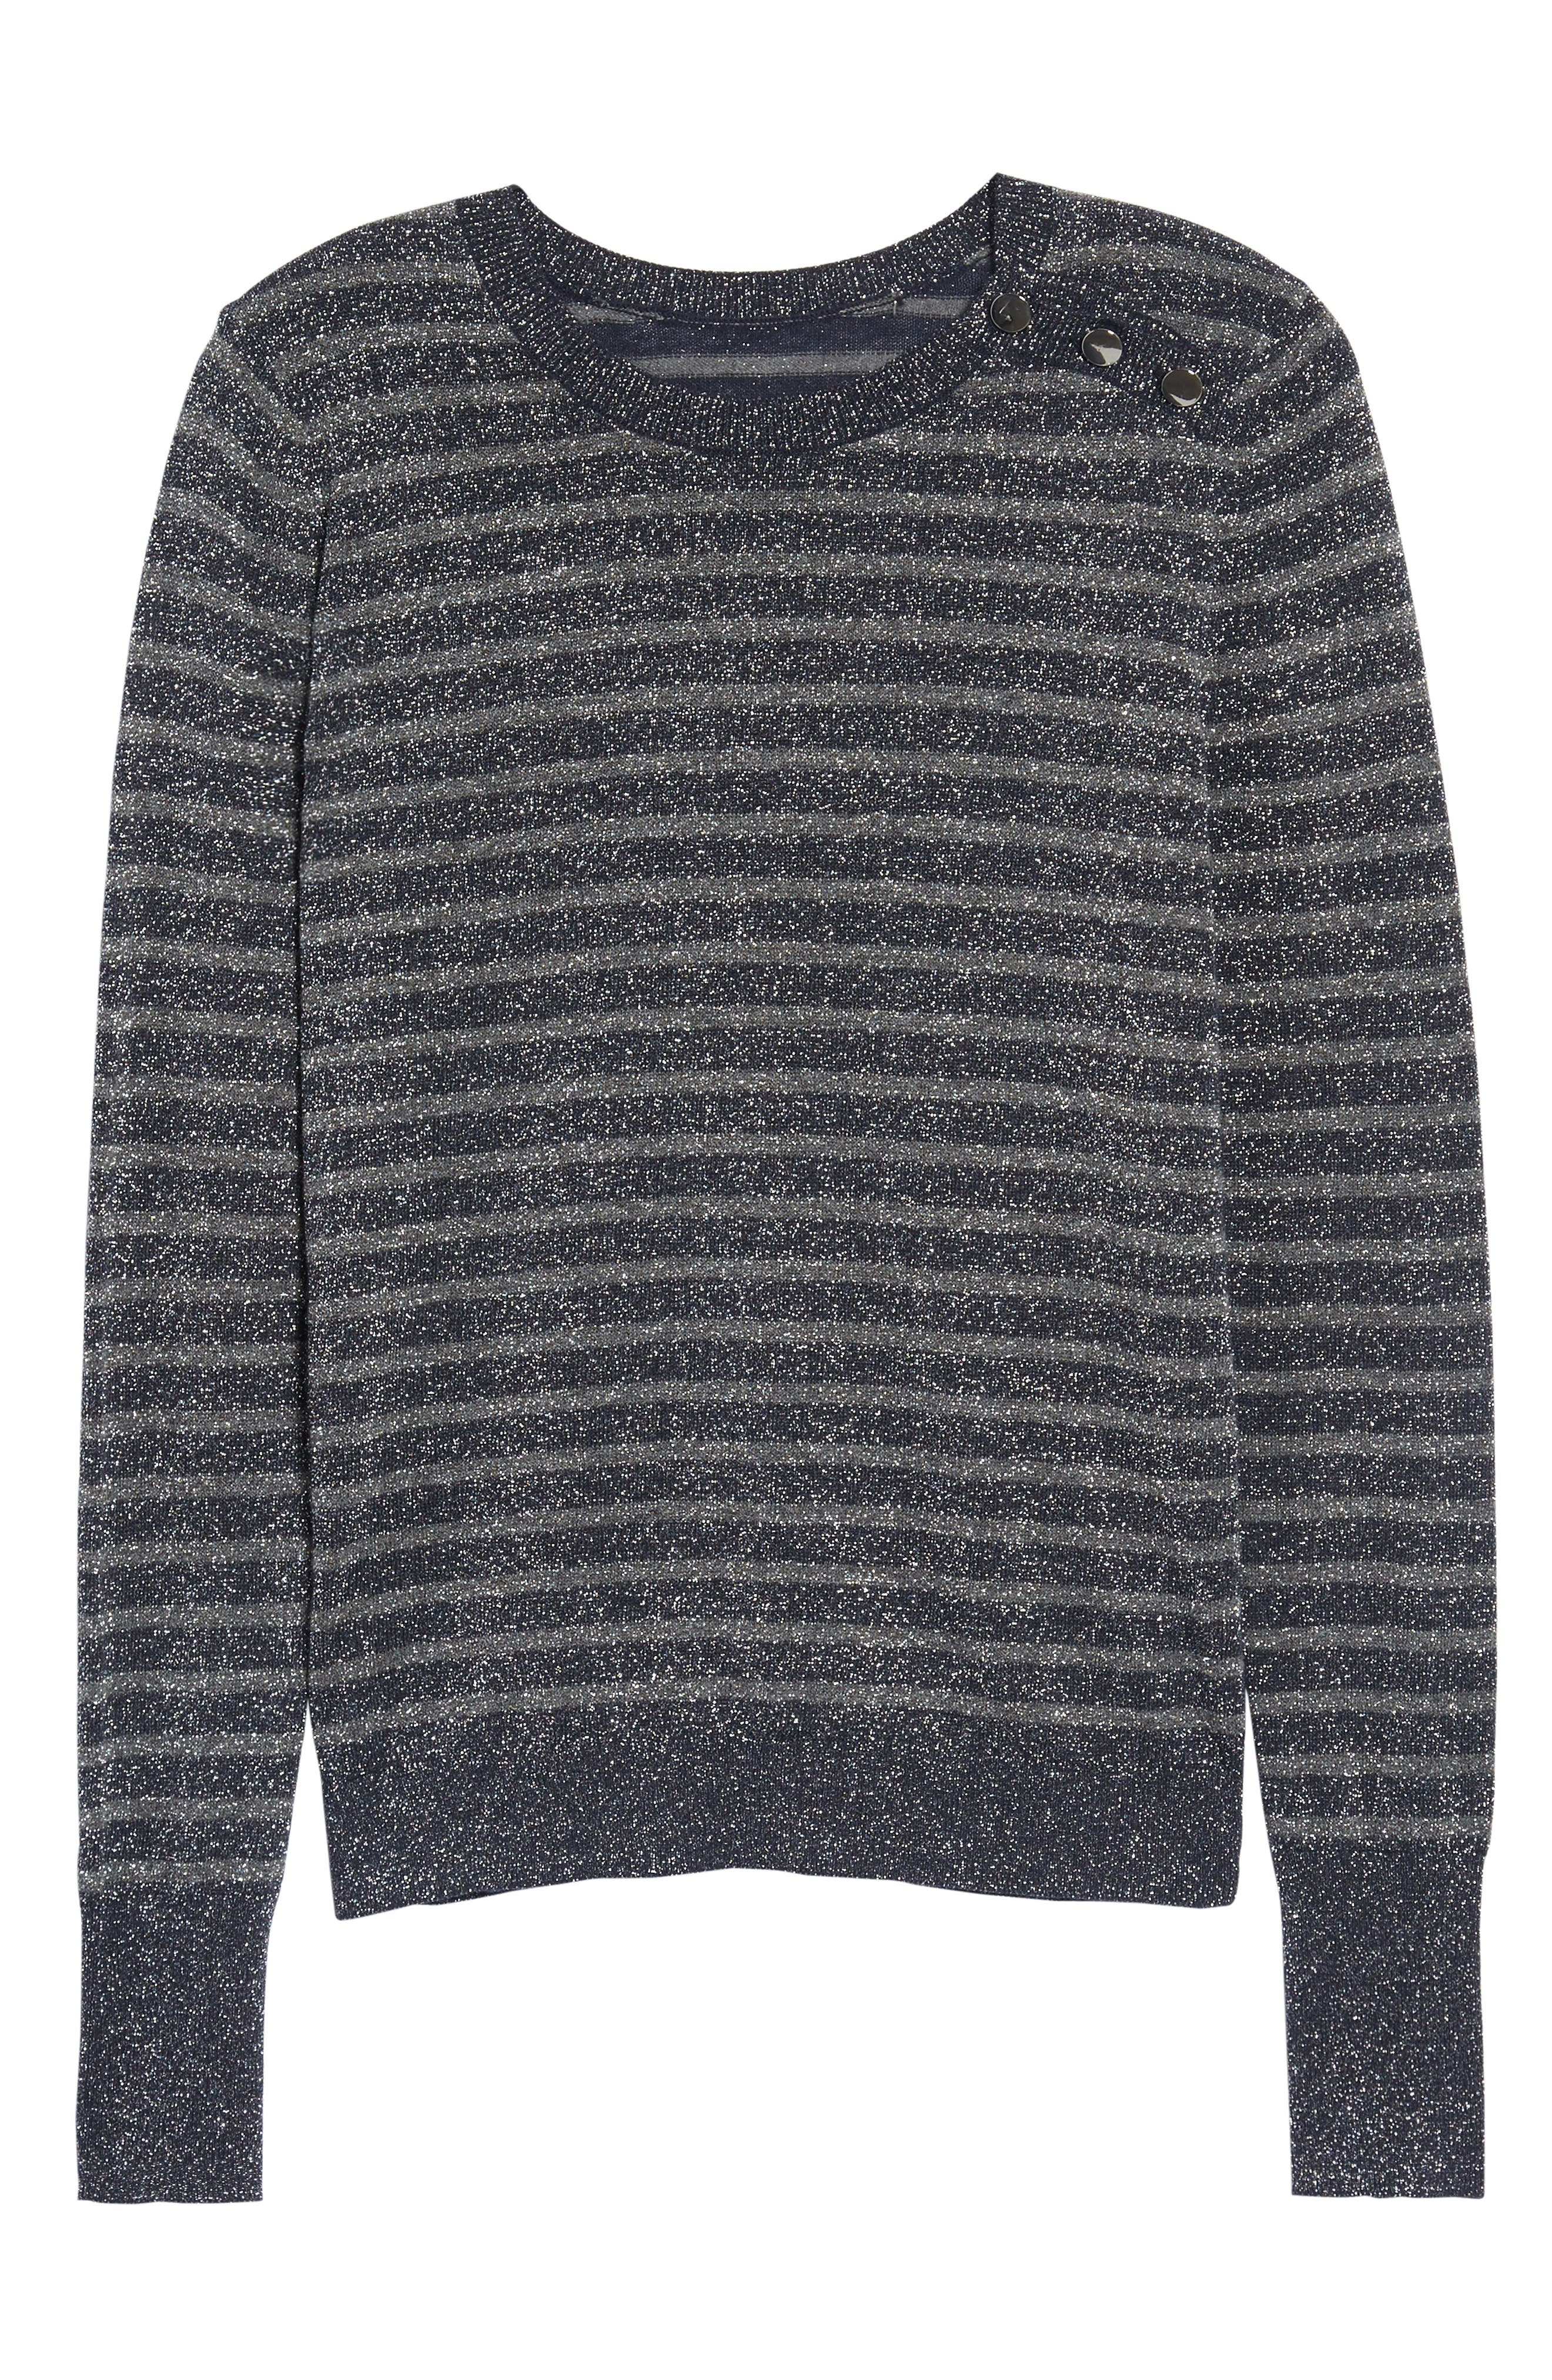 Sparkle Stripe Sweater,                             Alternate thumbnail 6, color,                             020